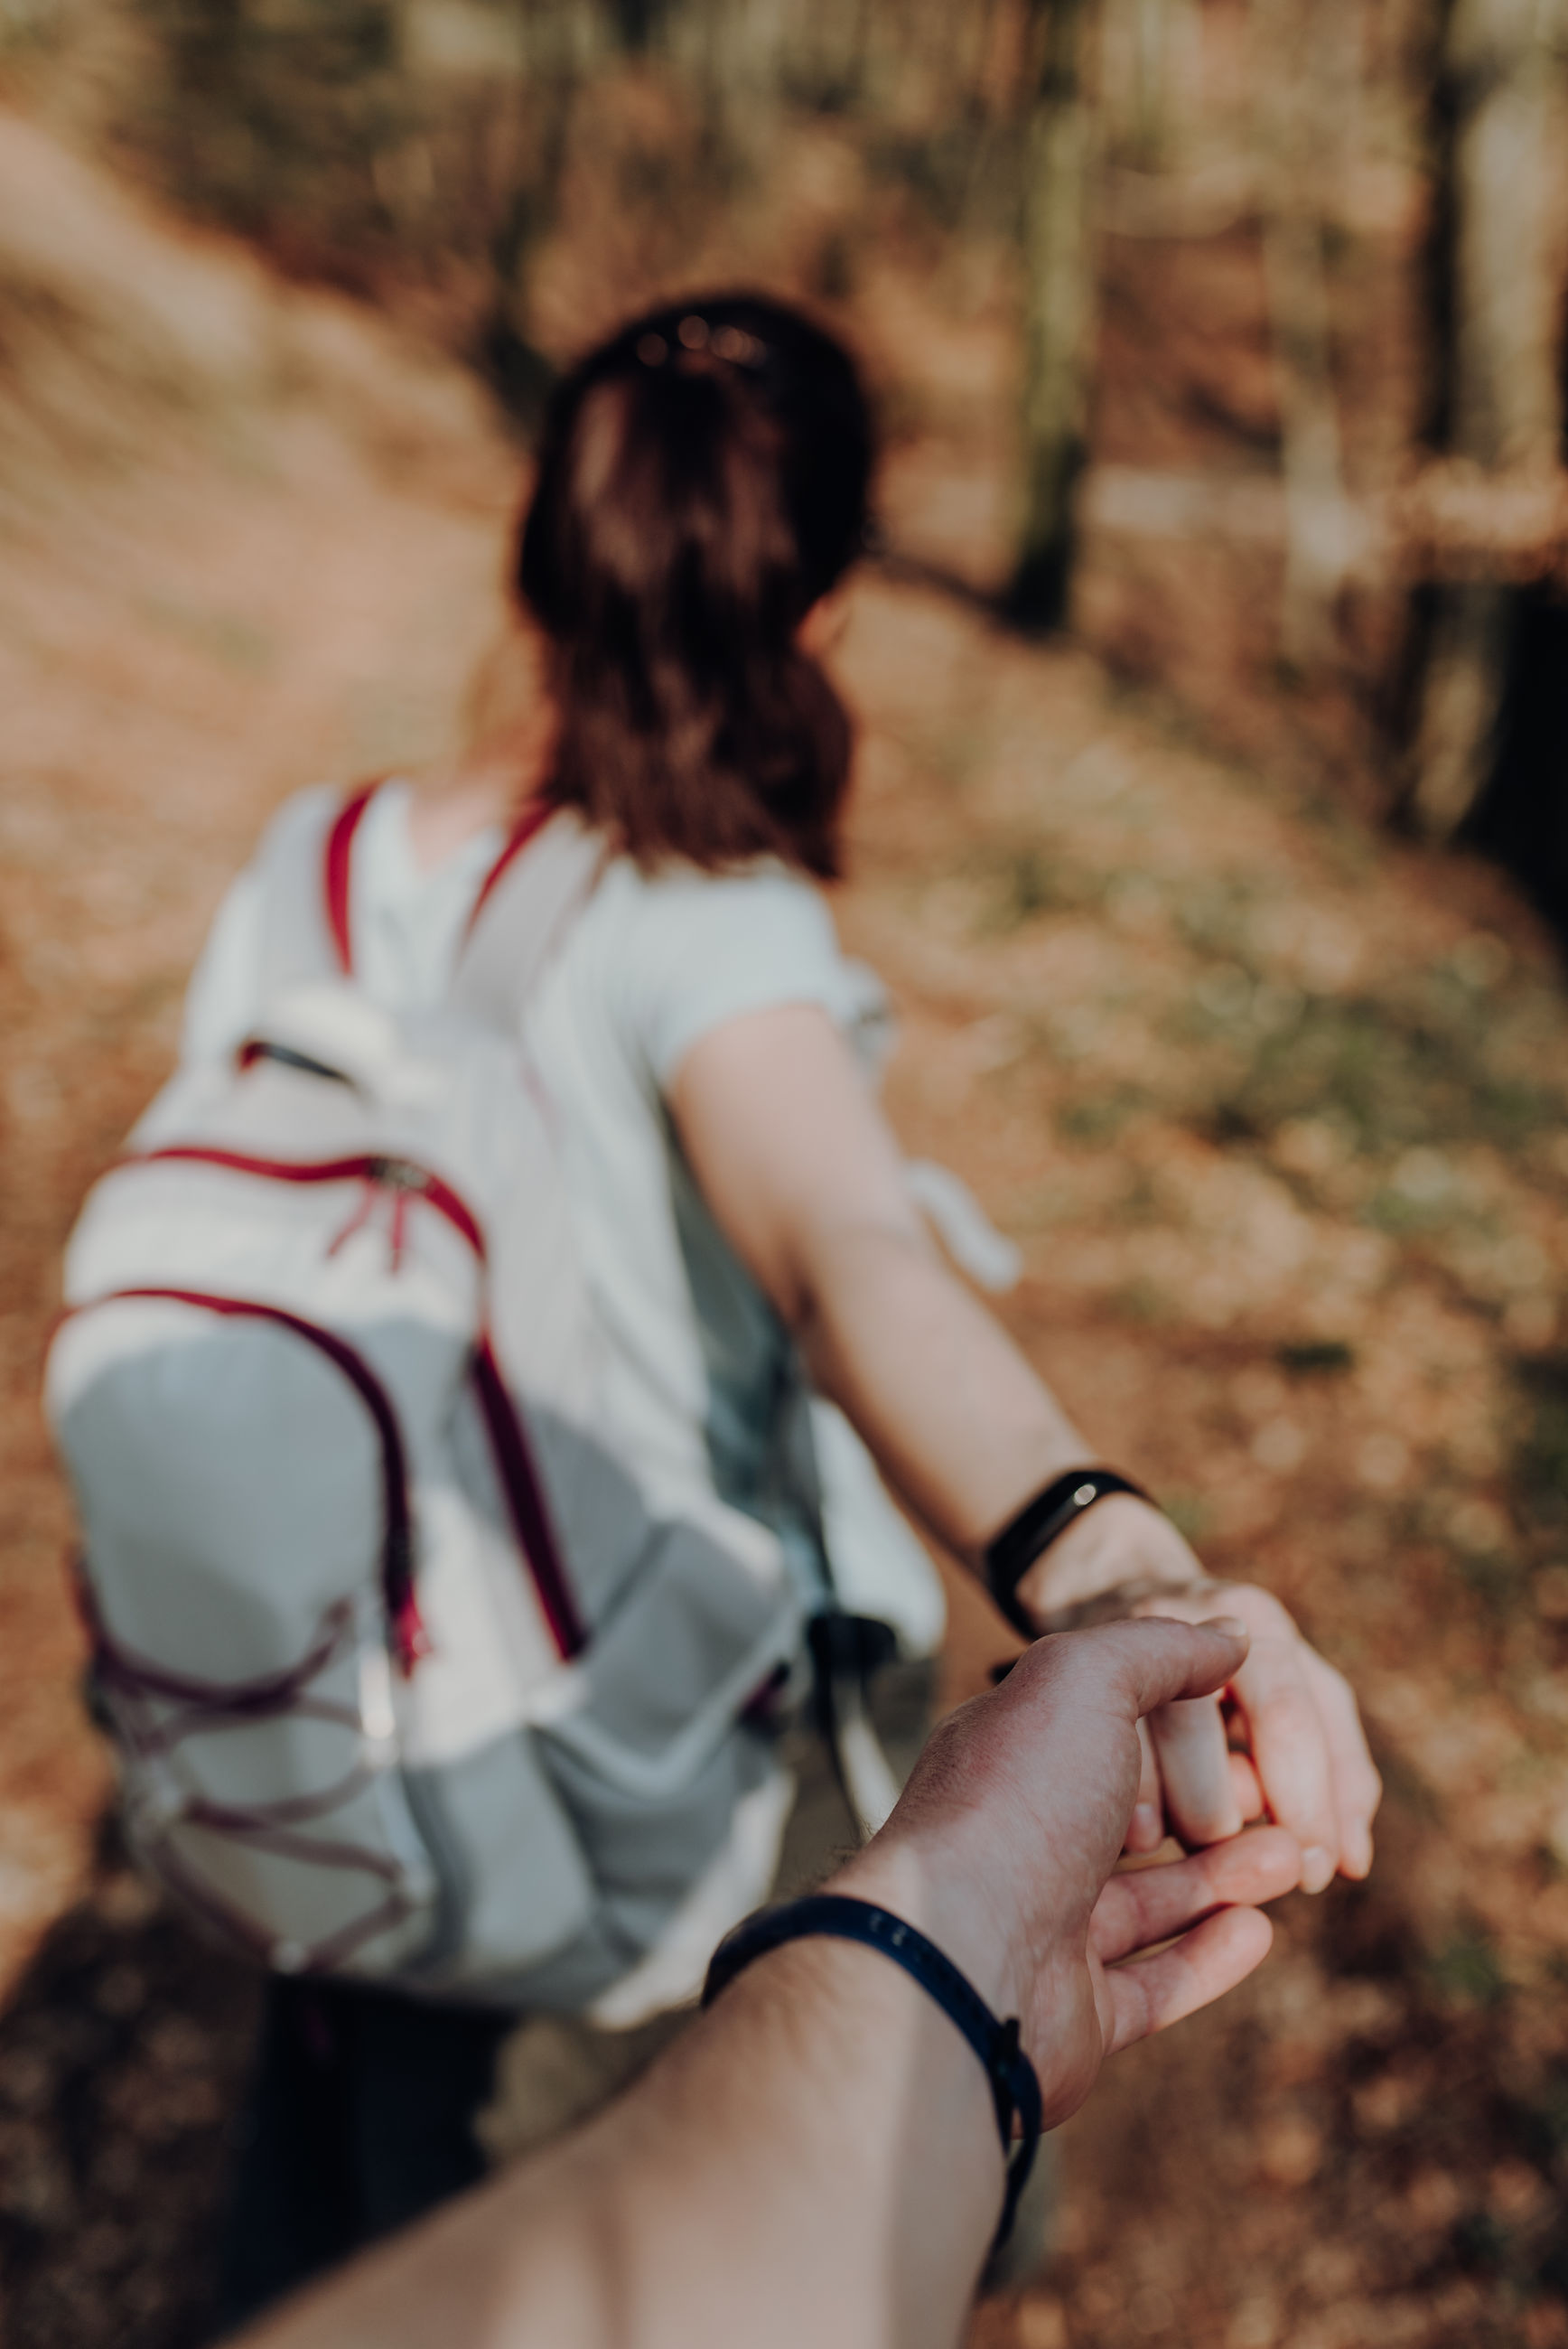 Couple holding hands while walking in forest